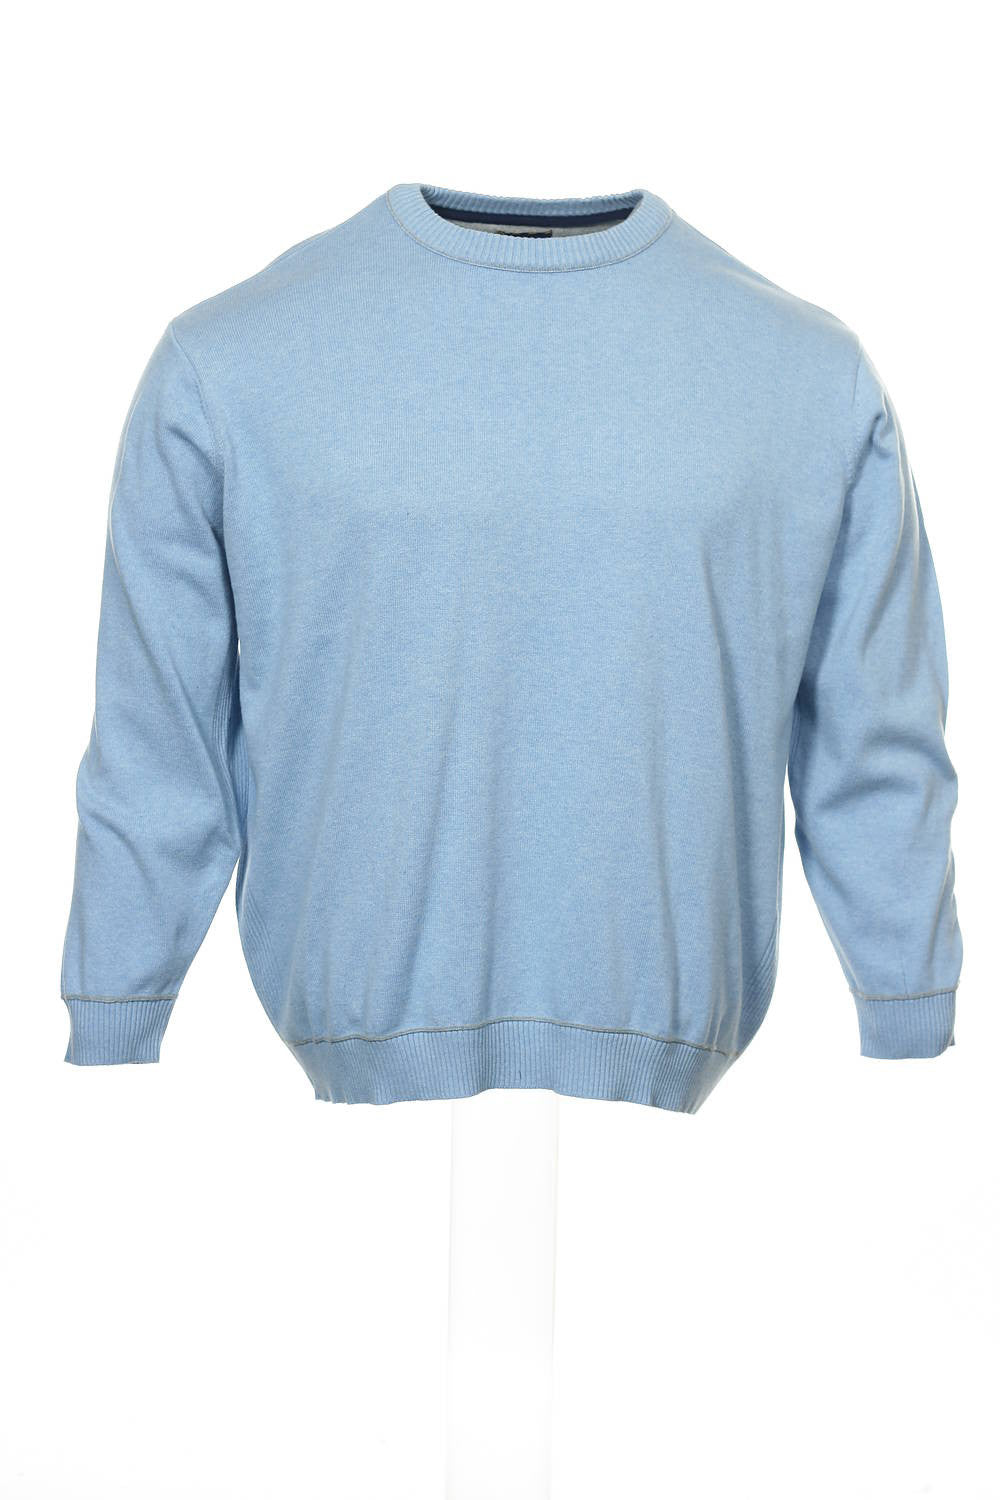 Club Room Mens Light Blue Heather Crew Neck Sweater